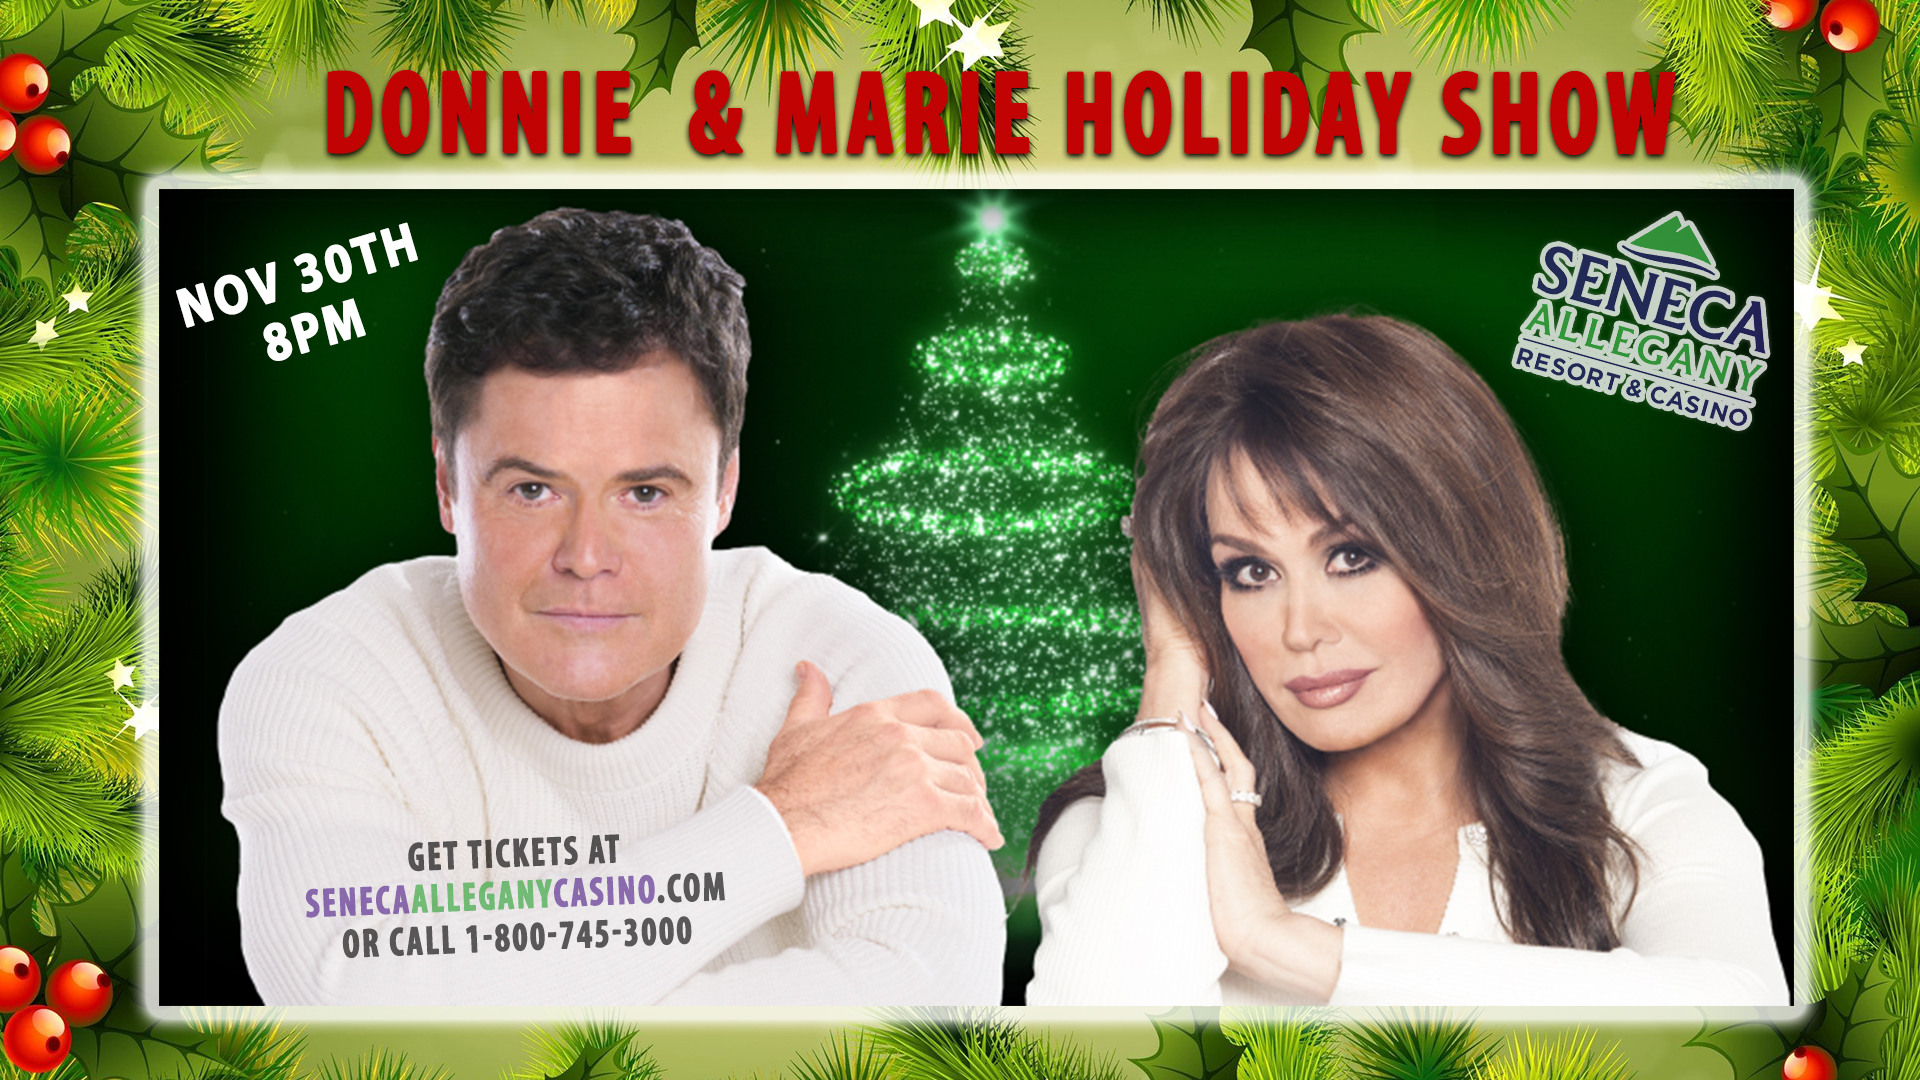 Donnie and Marie's Holiday Show at Seneca Allegany Casino